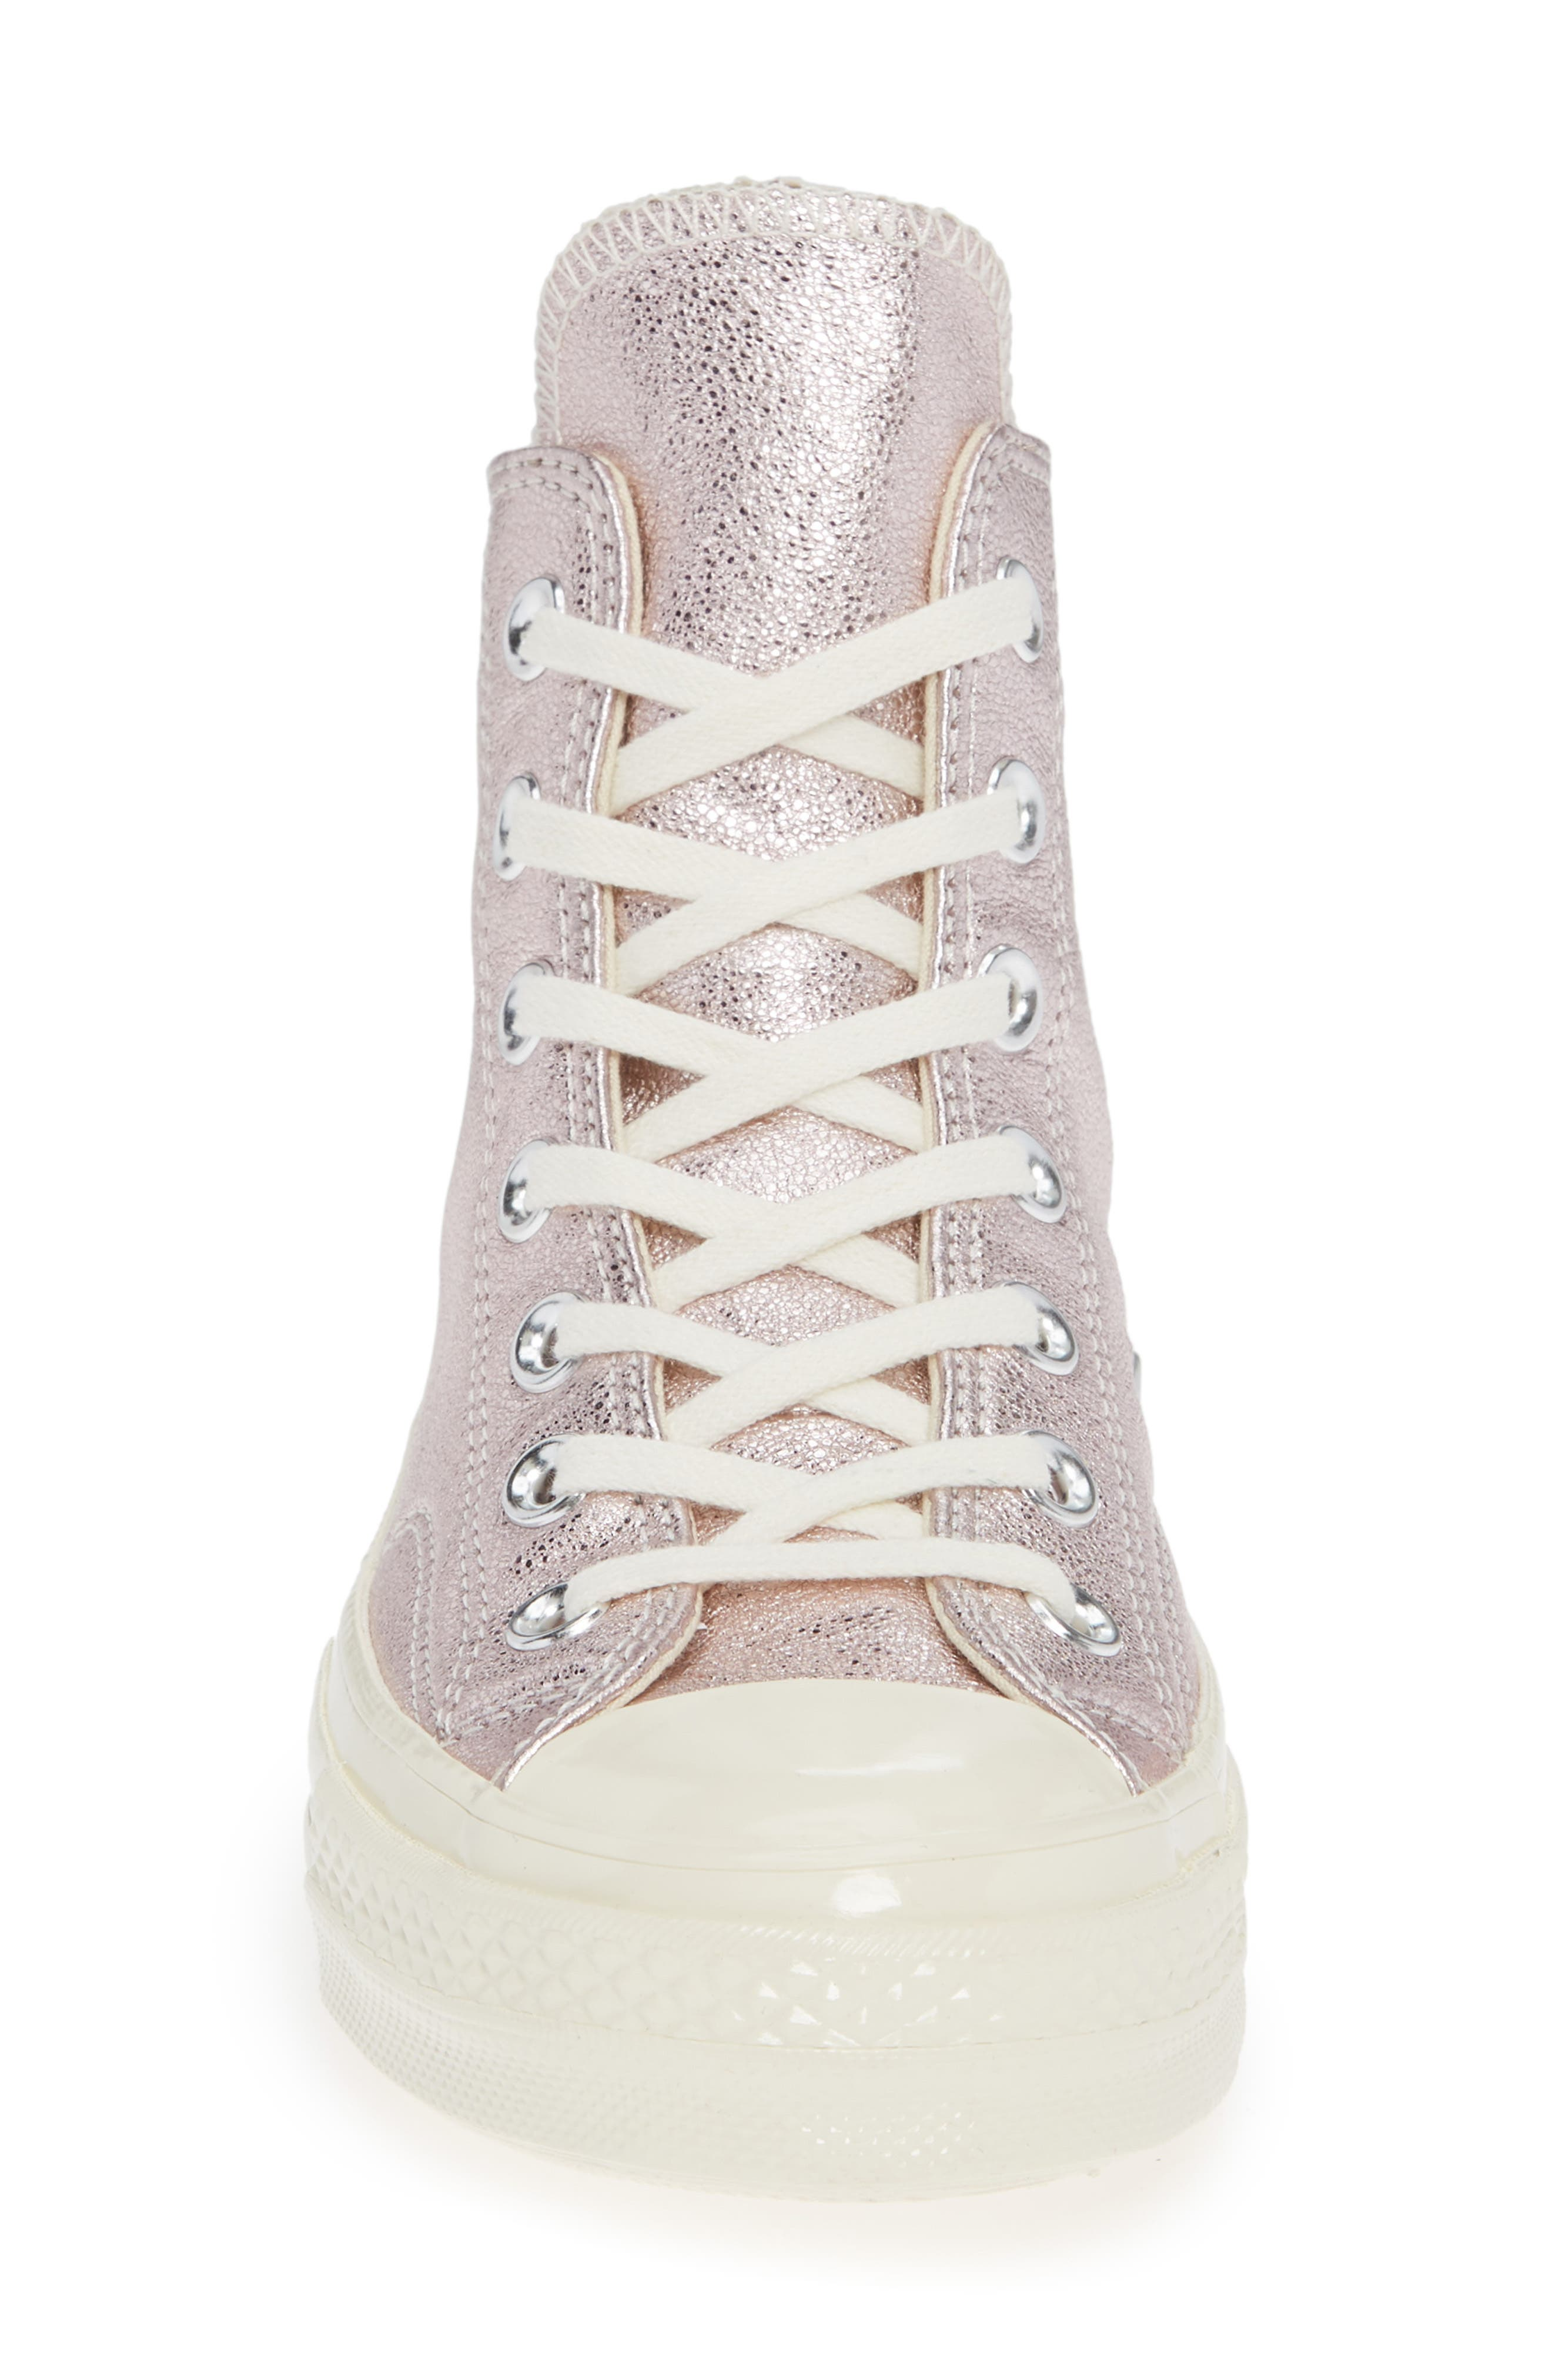 Chuck Taylor<sup>®</sup> All Star<sup>®</sup> Heavy Metal 70 High Top Sneaker,                             Alternate thumbnail 11, color,